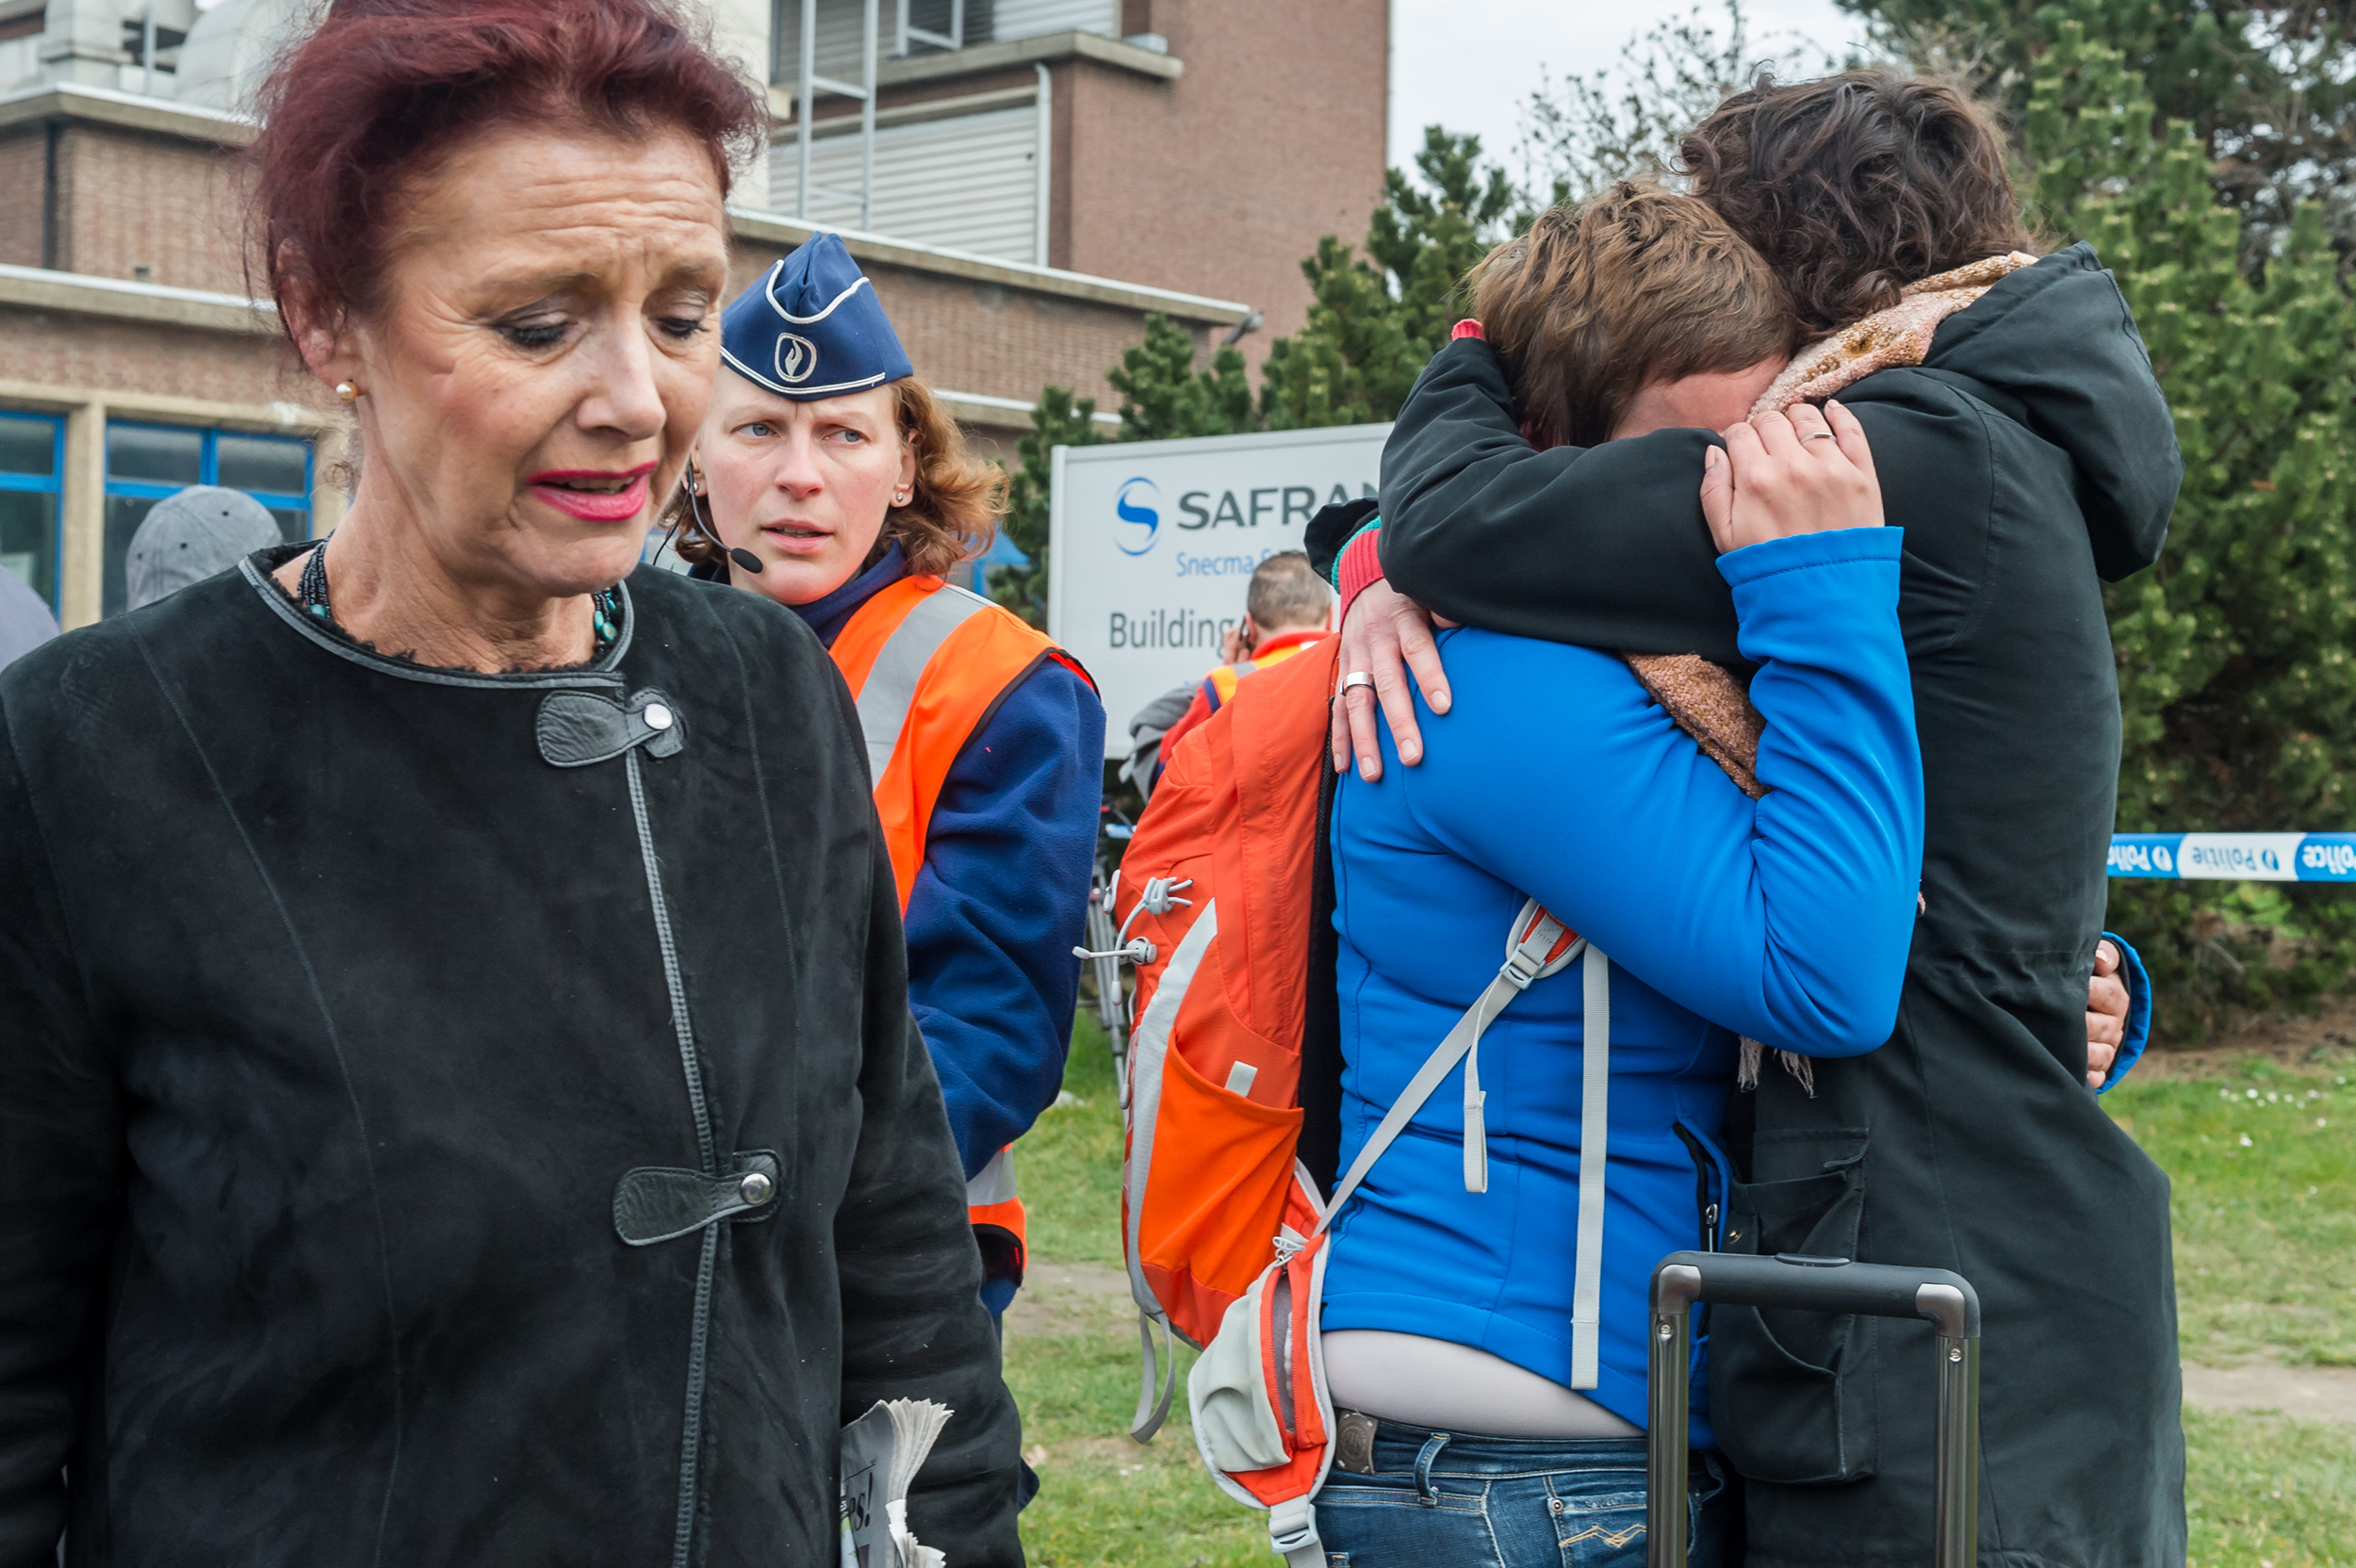 People react outside Brussels airport after explosions rocked the facility in Brussels, Belgium on March 22, 2016.